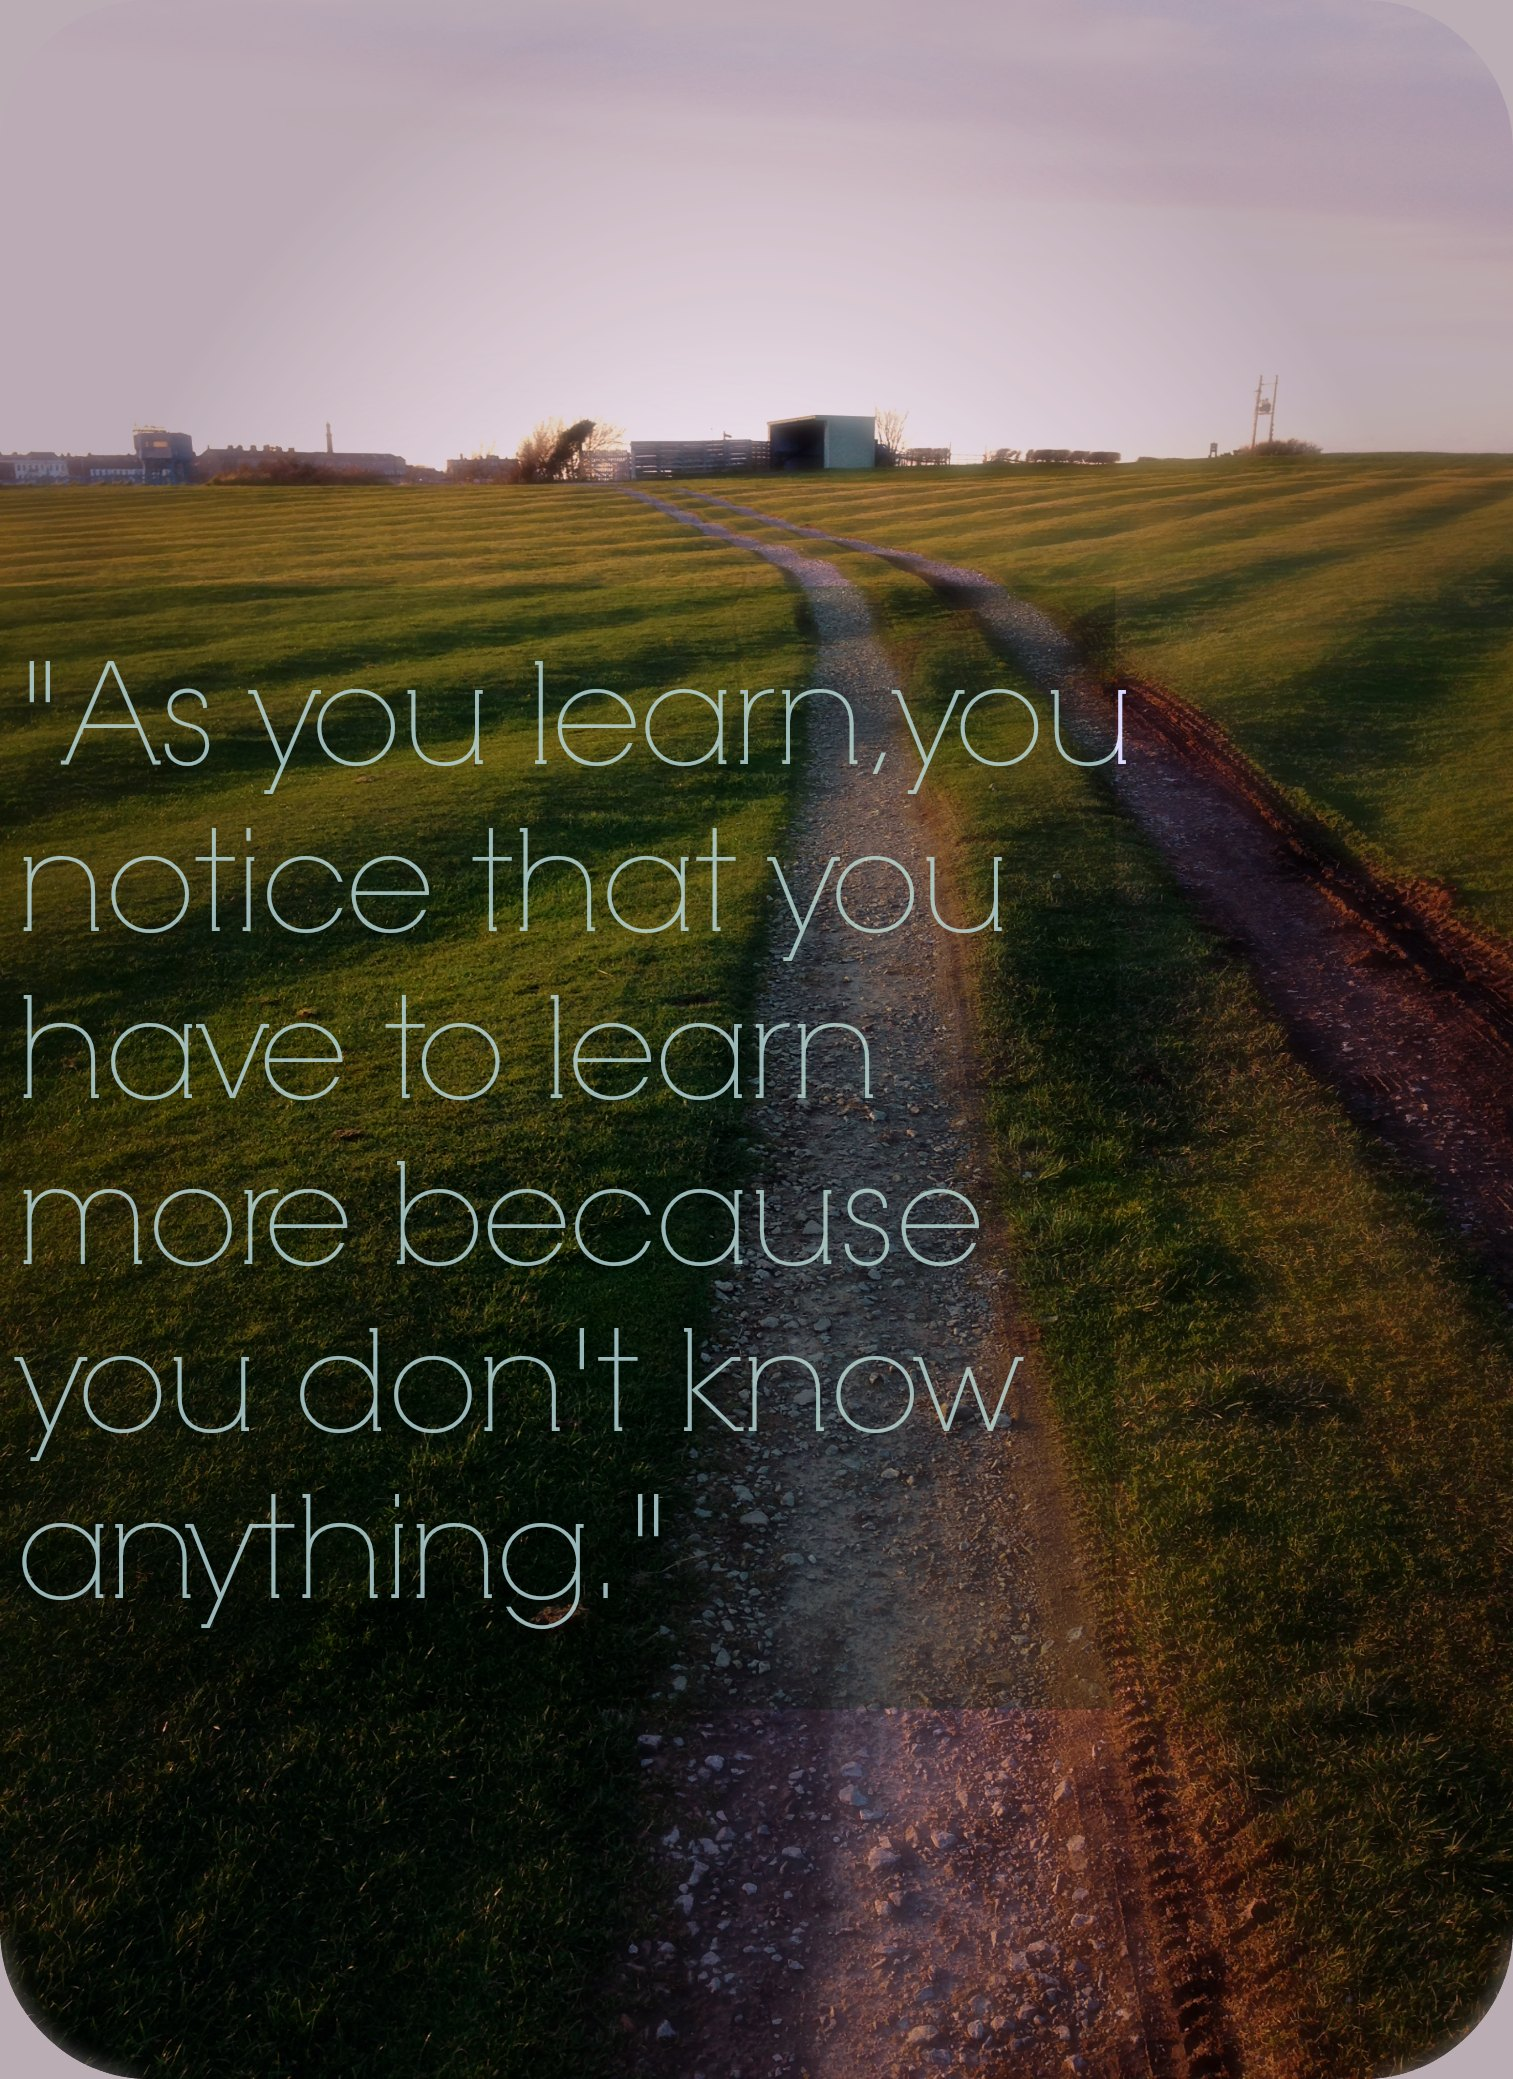 As you learn, you notice that you have to learn more because you don't know anything.